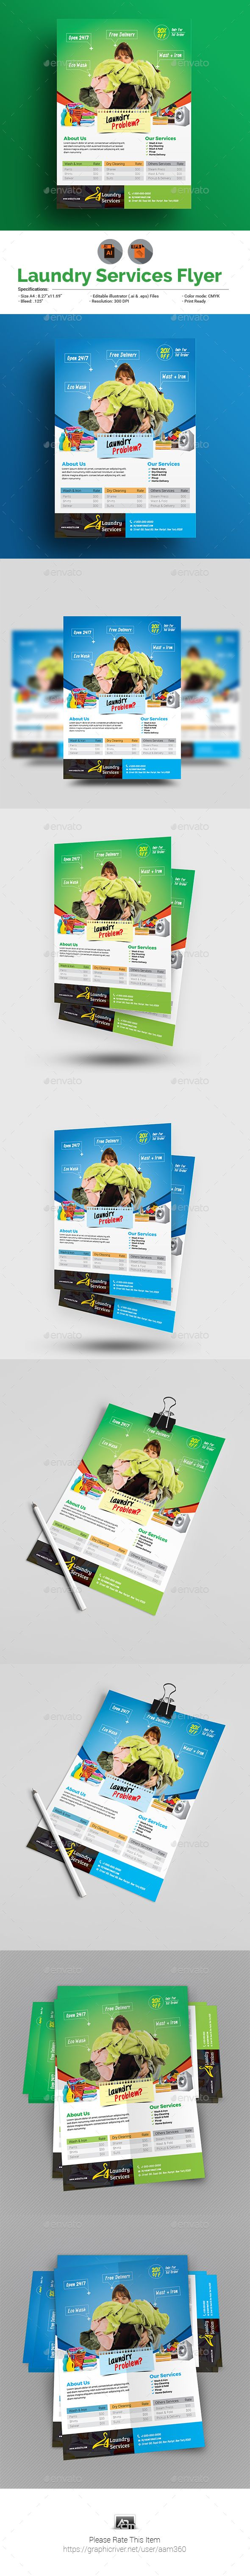 11 best laundry dry cleaning services print templates images on laundry services flyermagazine ad saigontimesfo